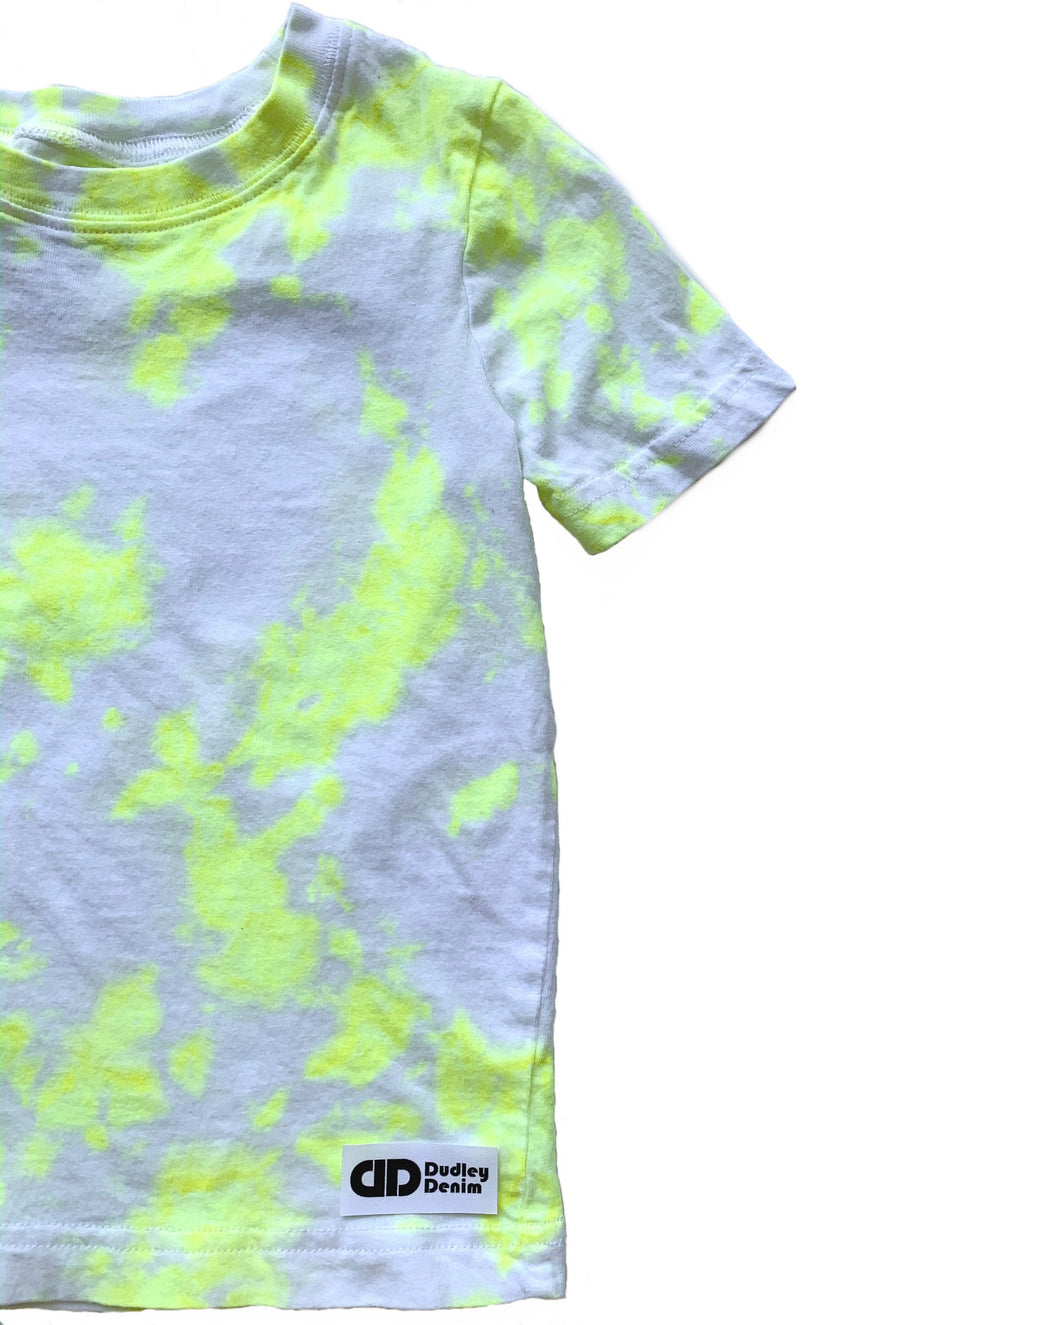 Baby/kids Neon Yellow Tie-dyed single colored t-shirt